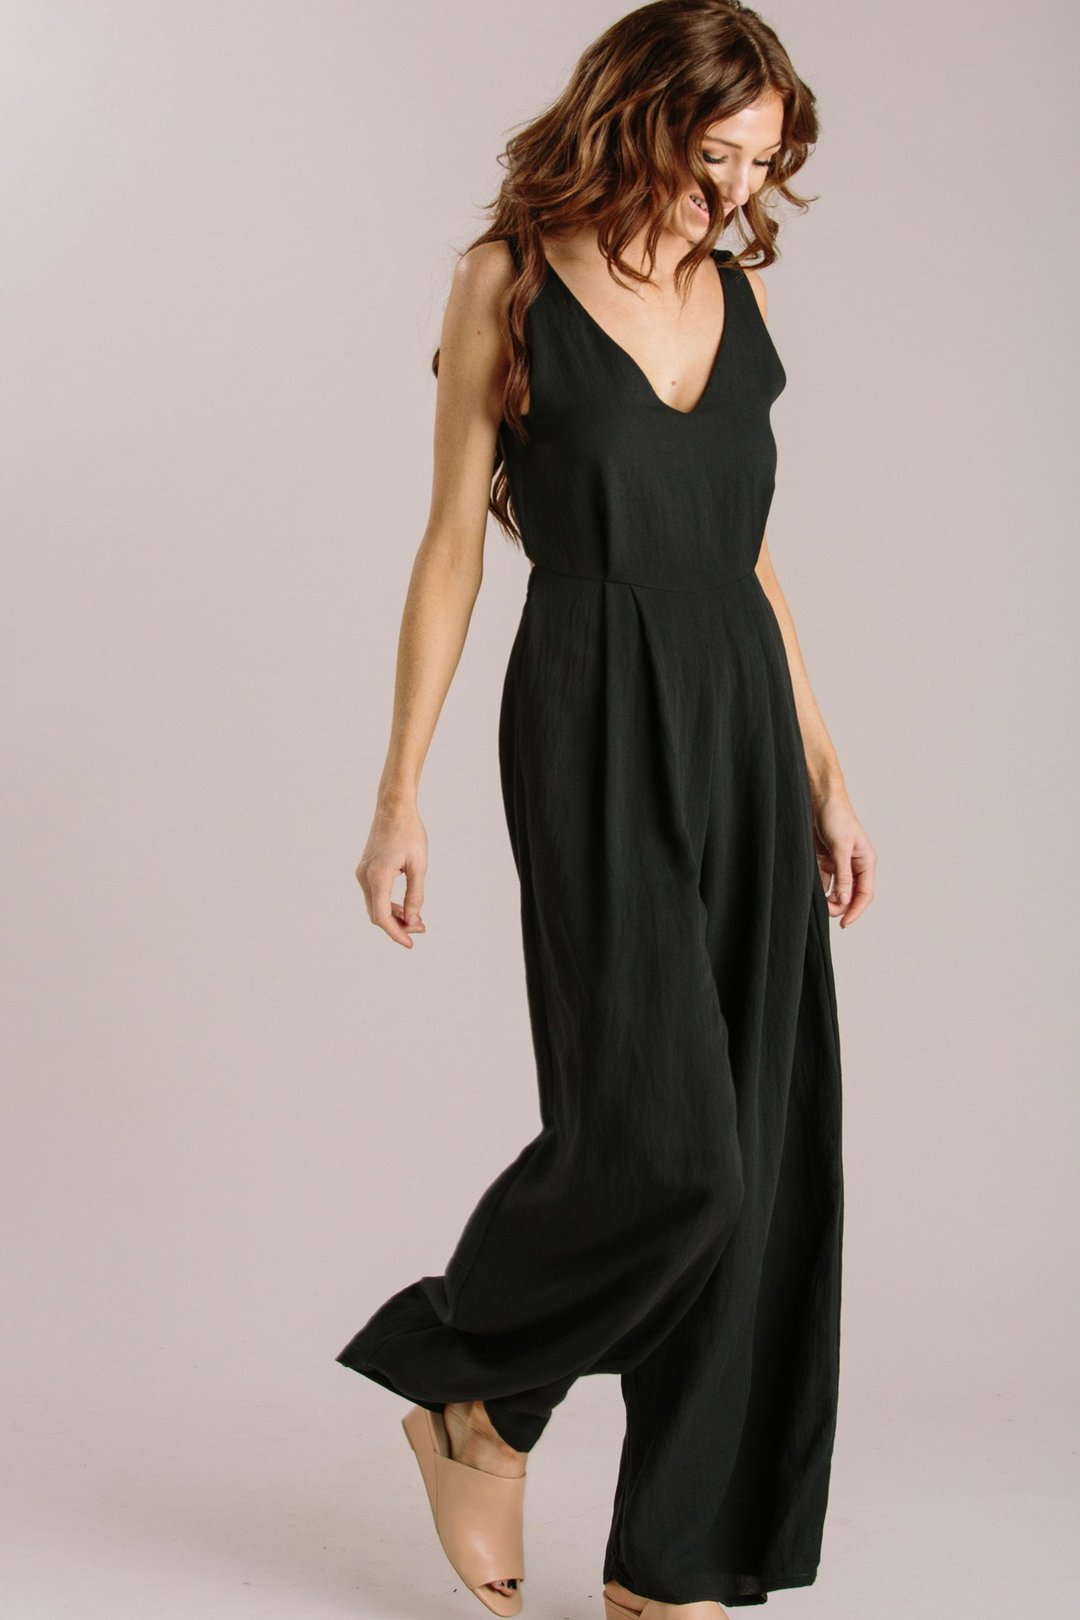 9fa88d2454c9 Abigail Black Tie Back Jumpsuit - Morning Lavender - https://morninglavender .com